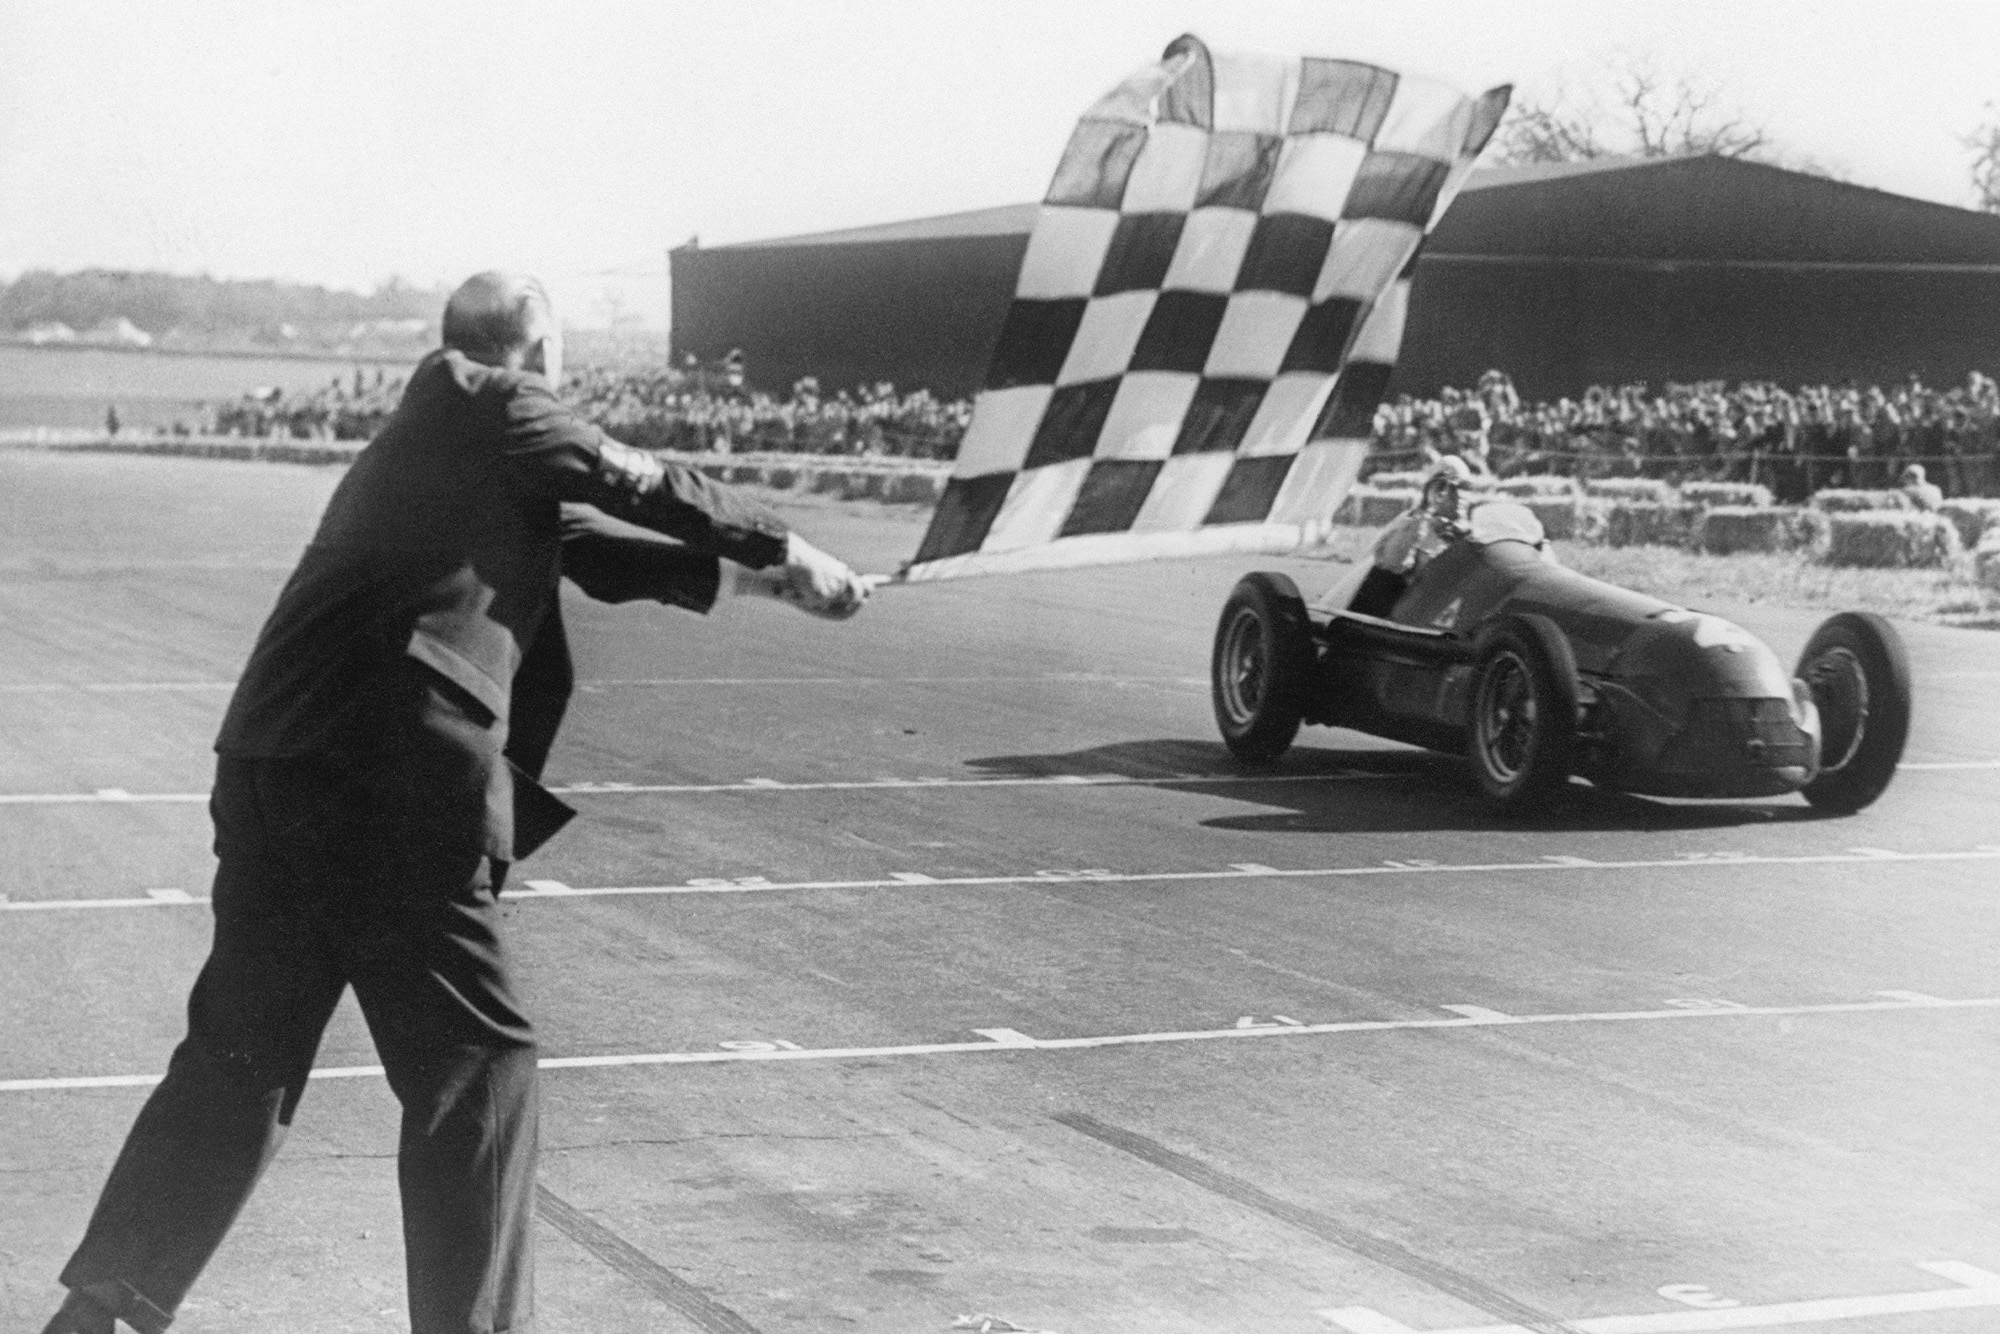 Giuseppe Farina takes the chequered flag to win the 1950 British Grand Prix at Silverstone